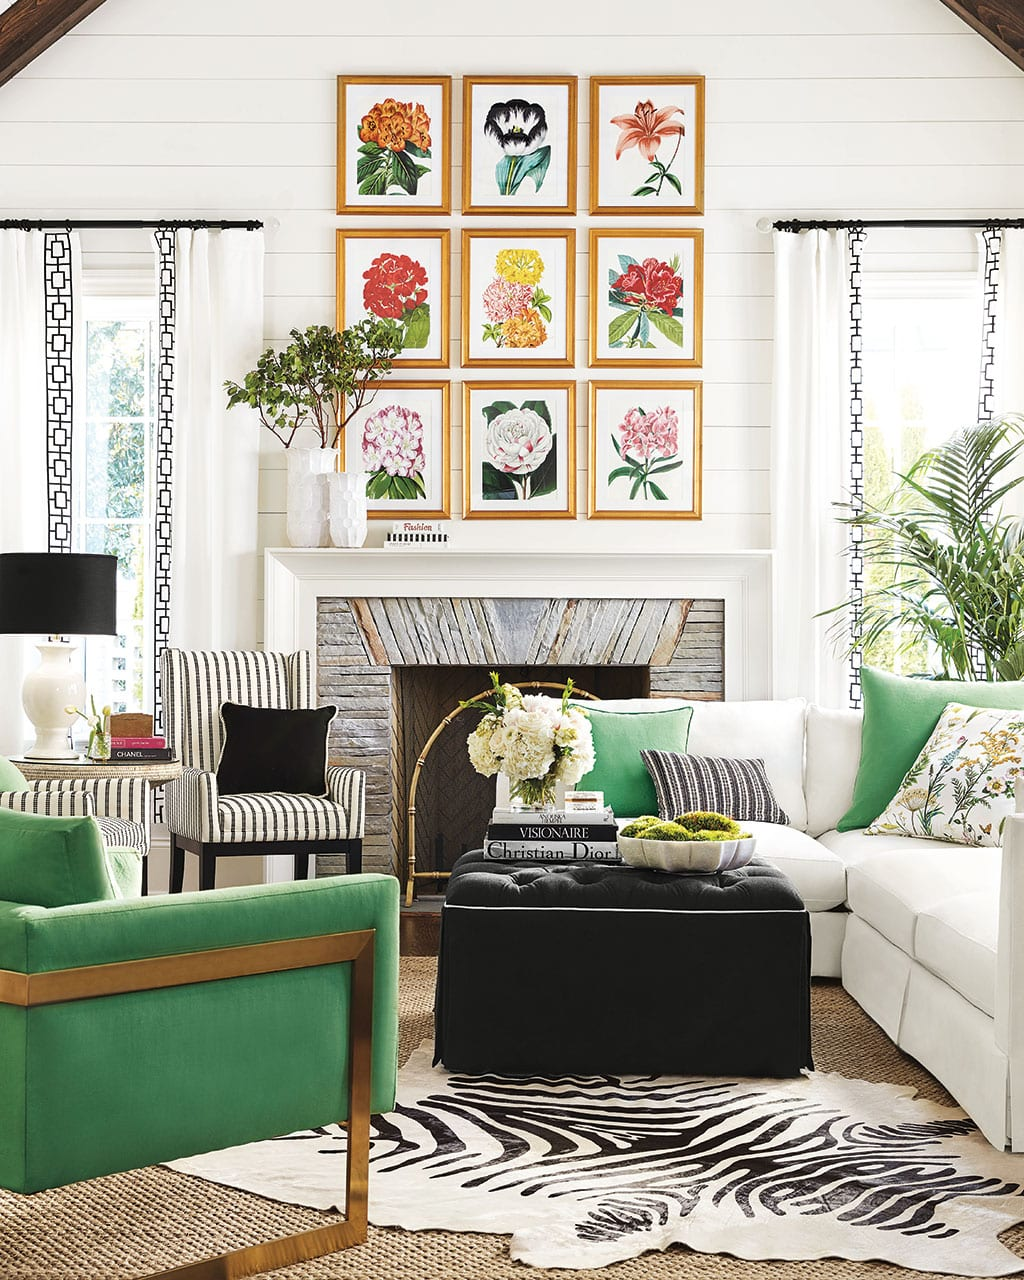 how to decorate living room wall curtains for large windows fresh on trend home decorating design ideas 5 common mistakes and fix them